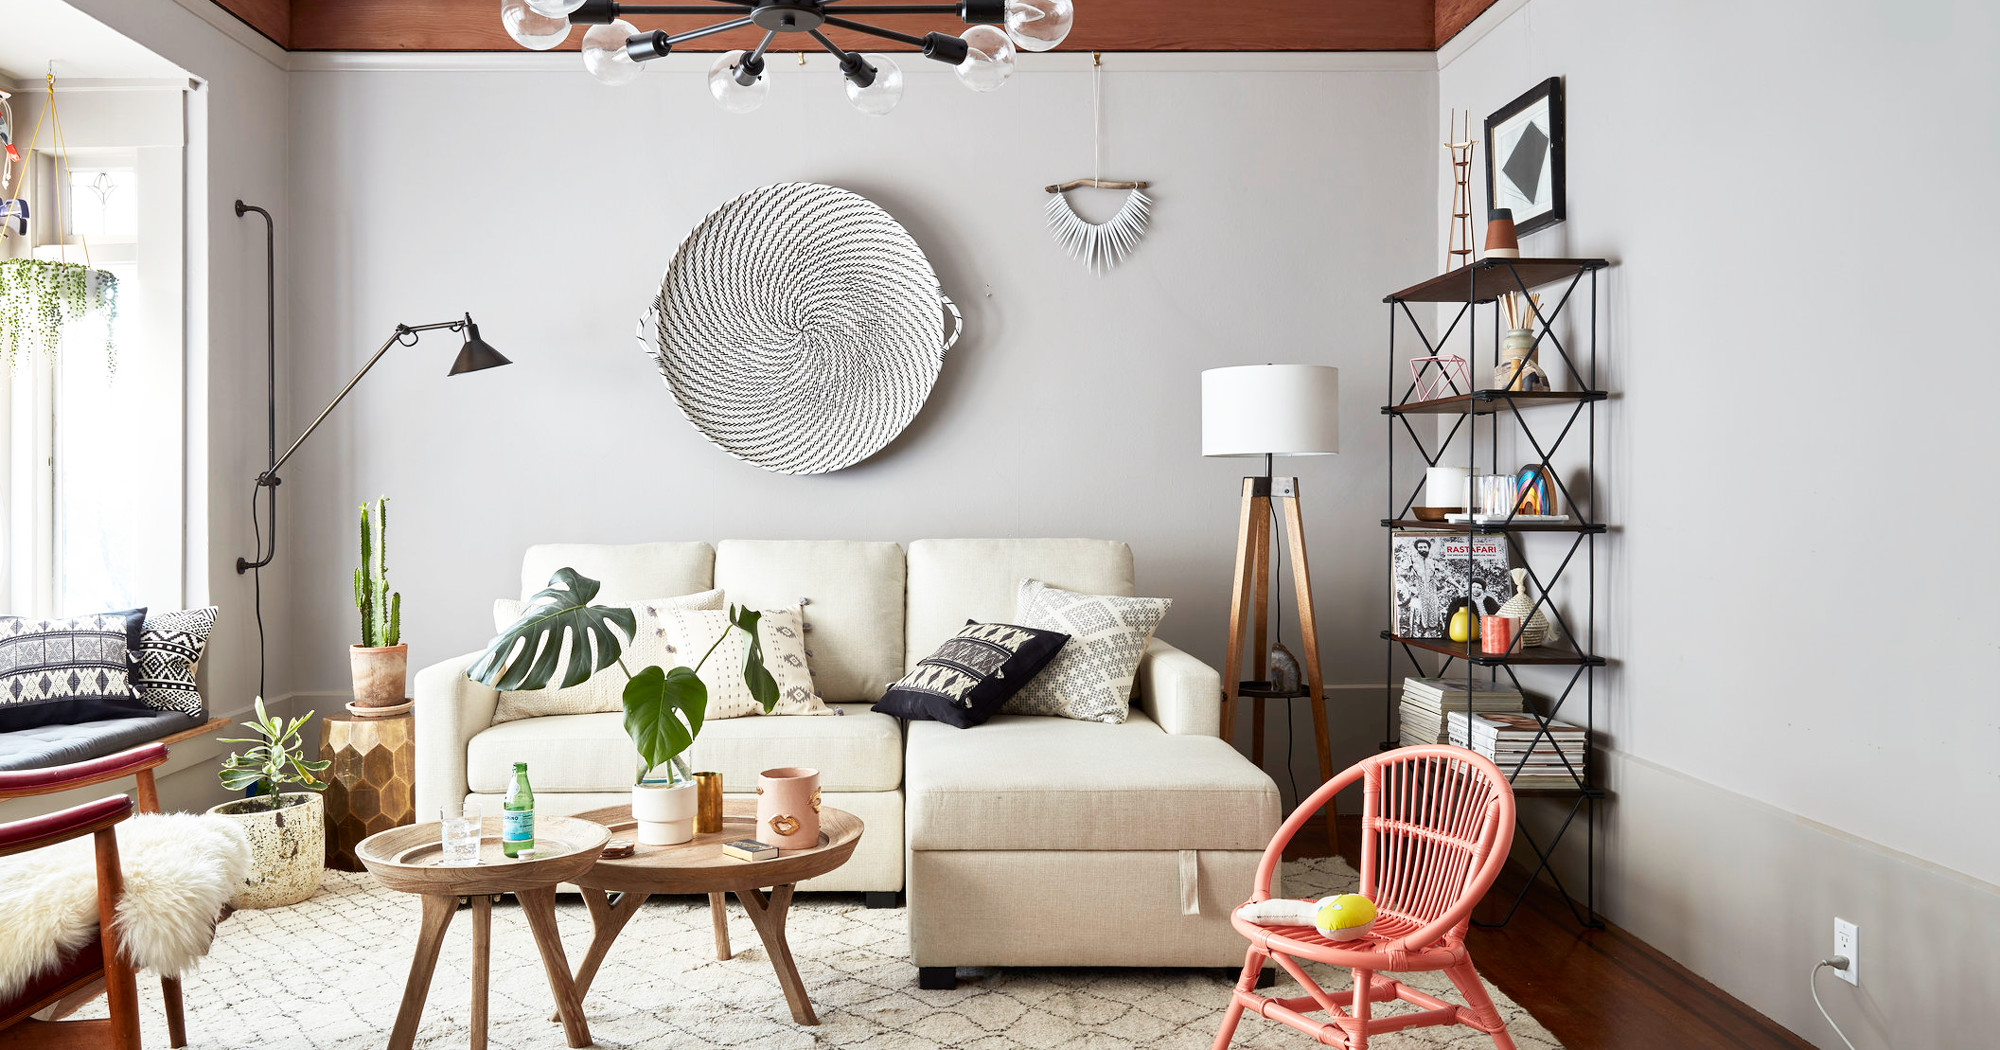 5 interior design ideas for small living room spaces